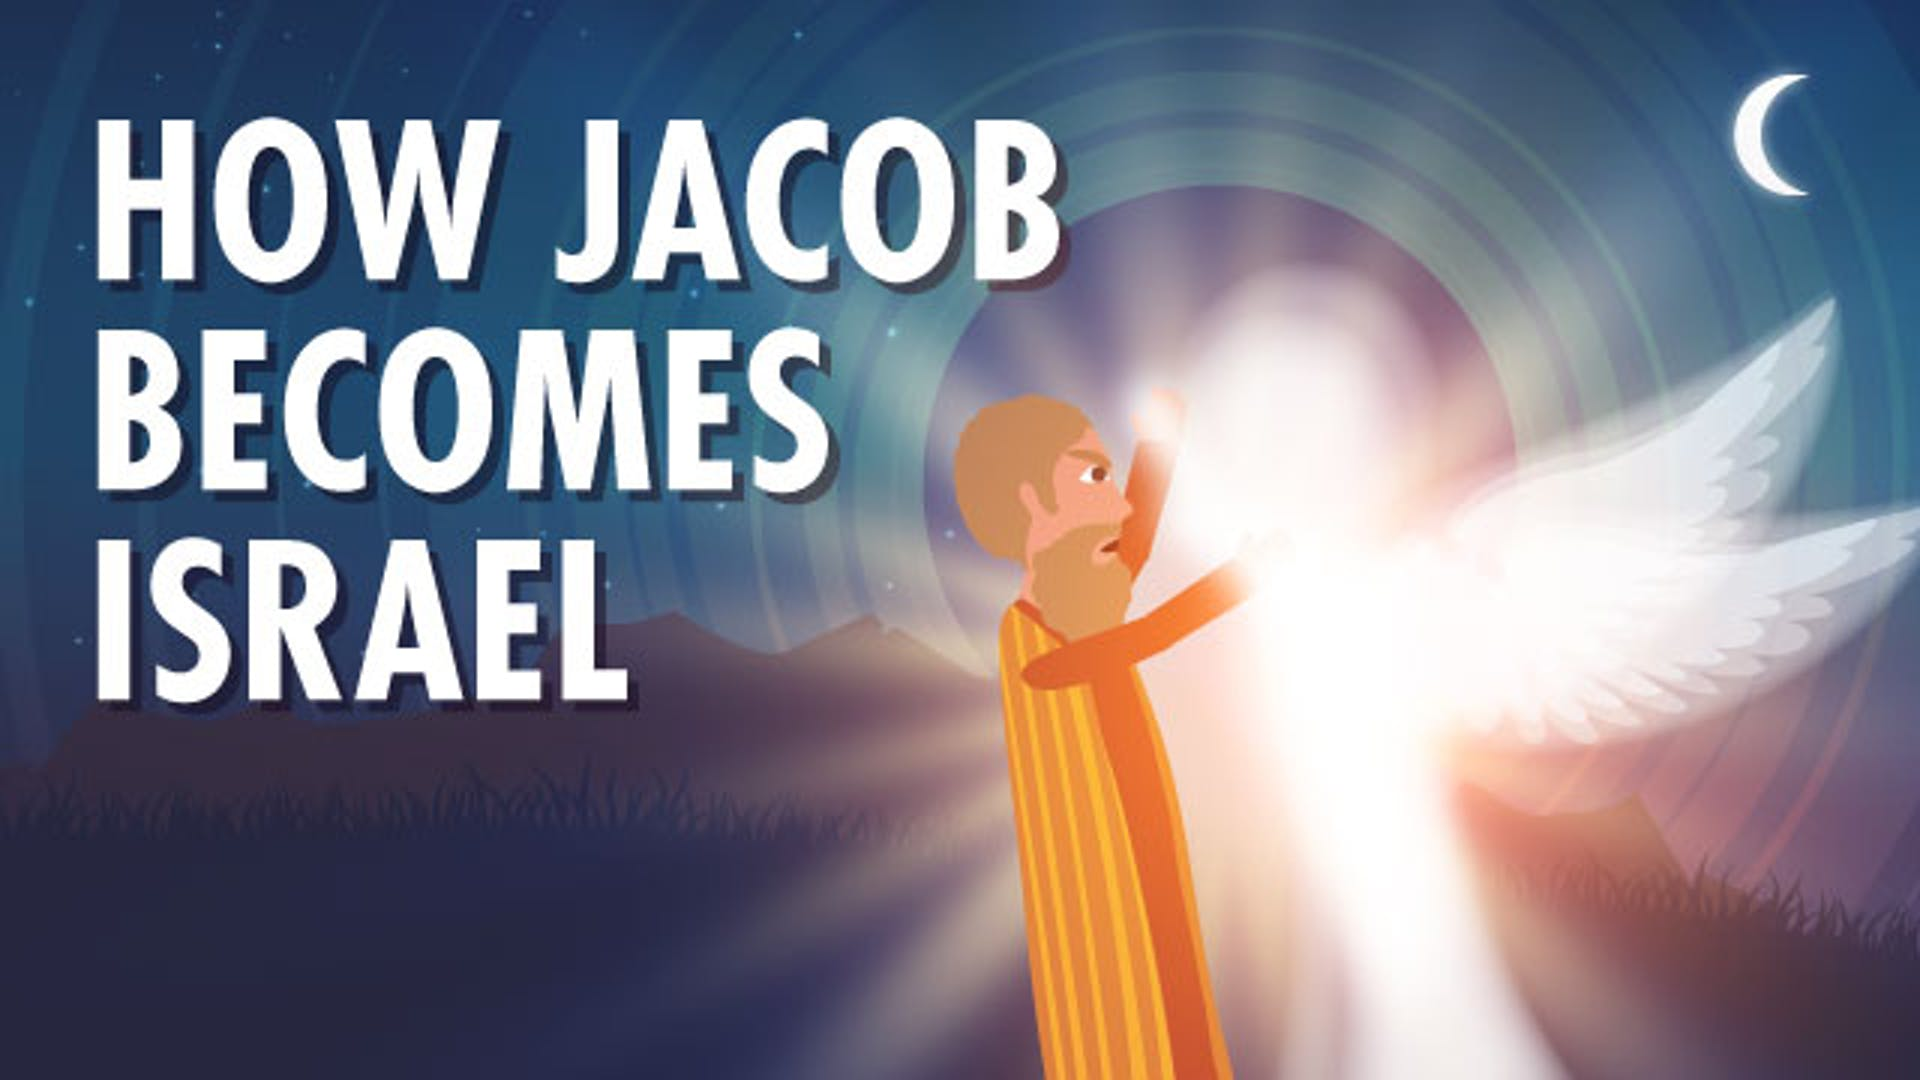 Jacob name change to Israel meaning